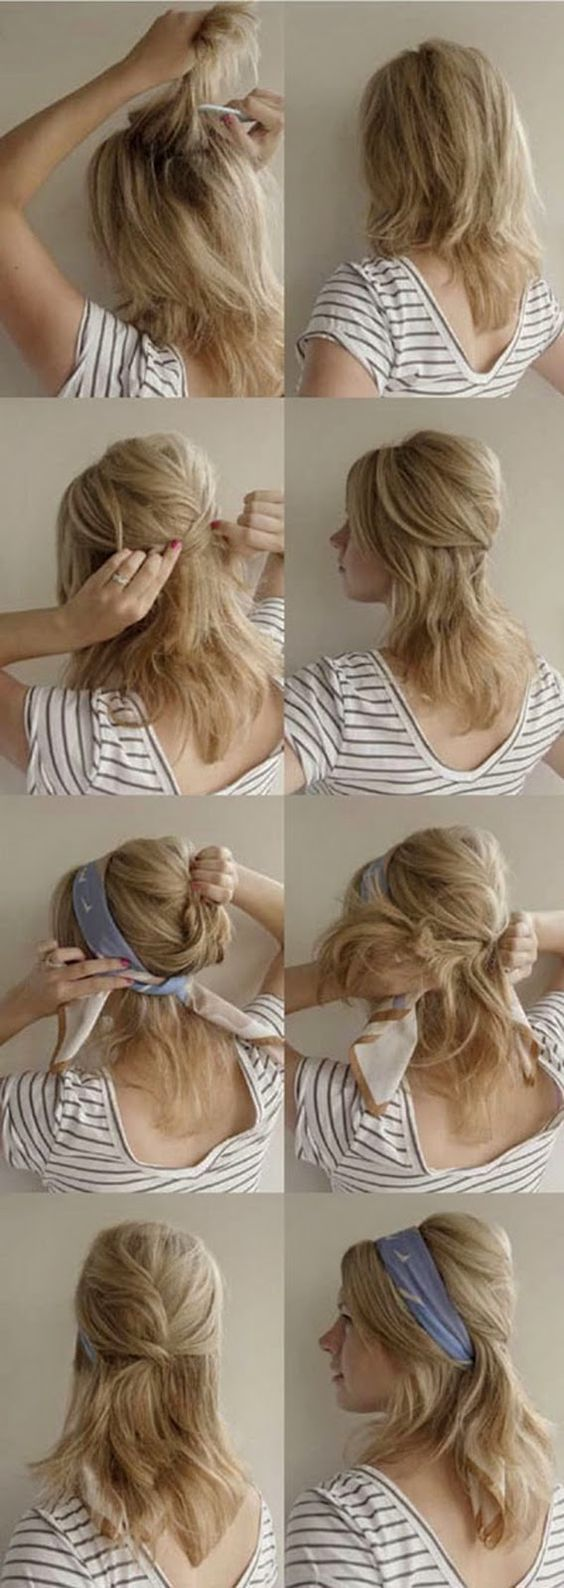 Hair scarf nikki lanser here is how you could do it with you hair